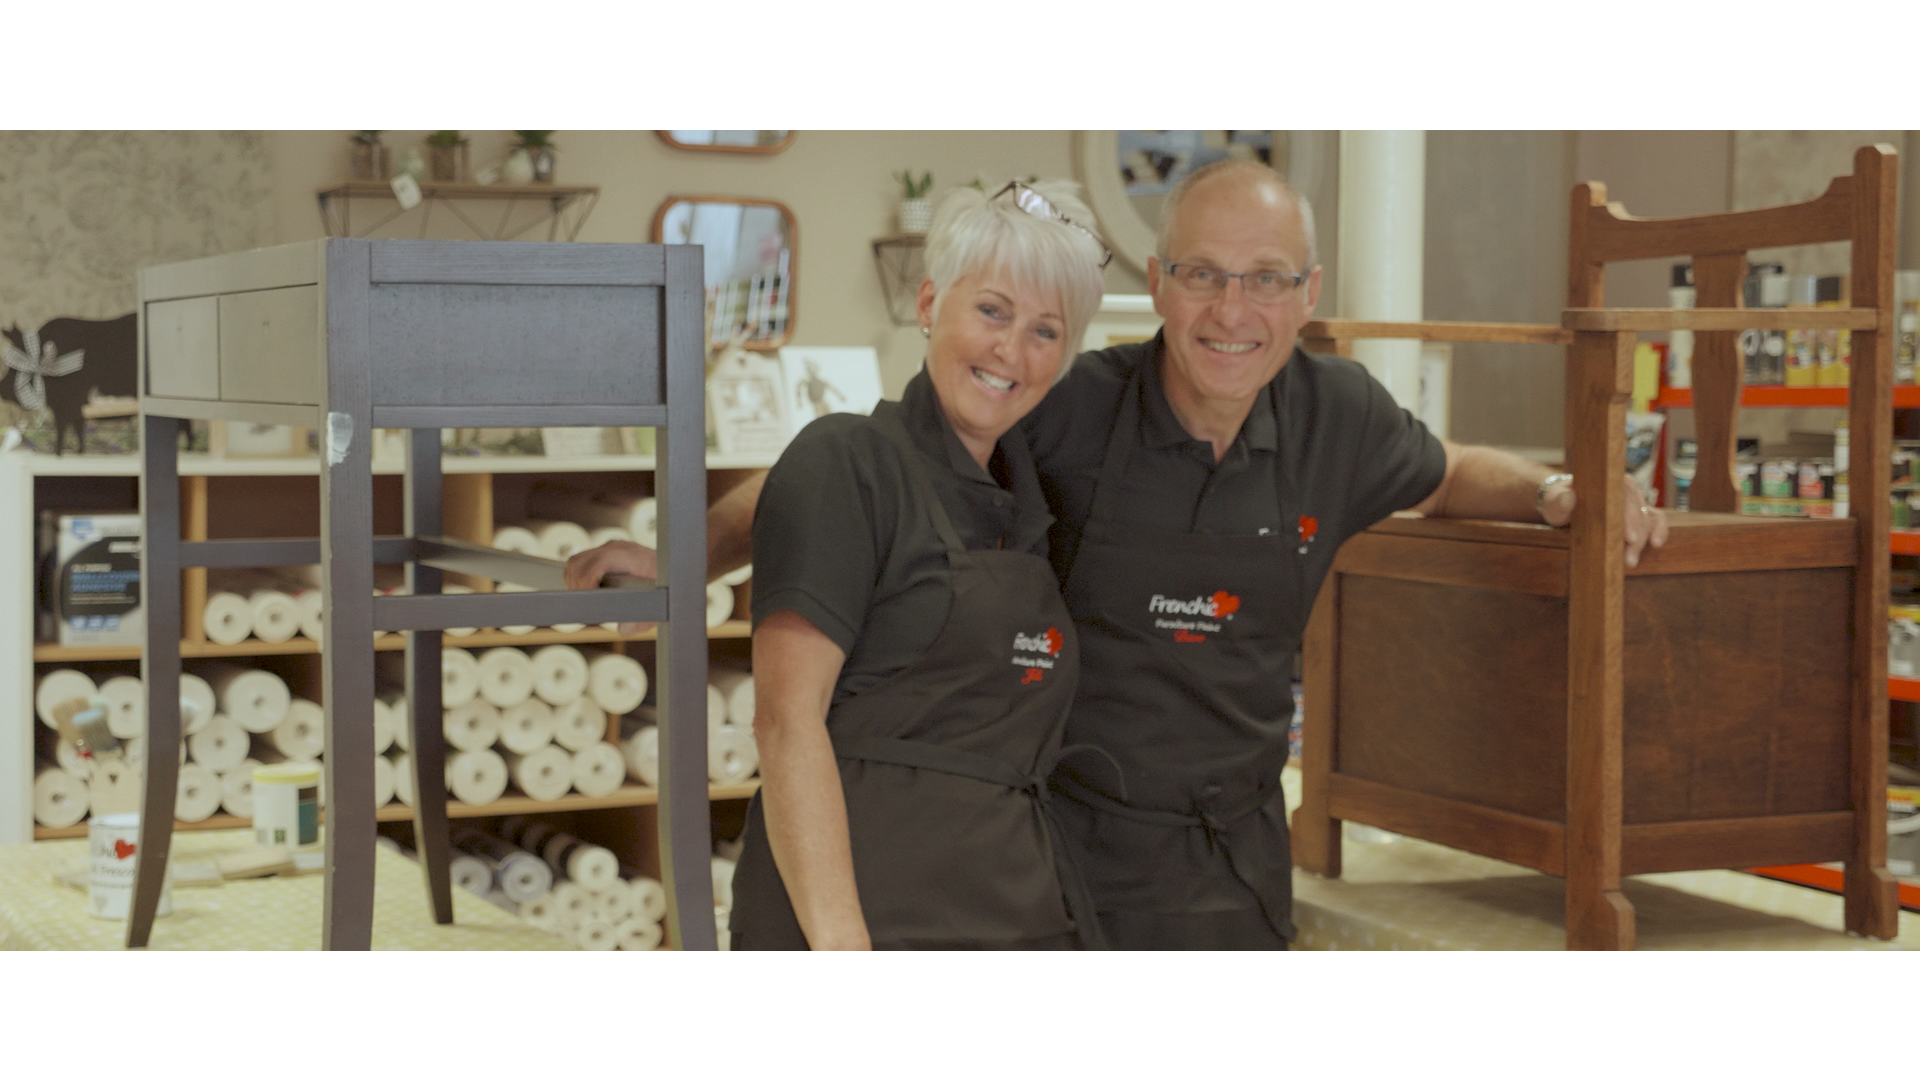 Axholme Decorating Centre Jill and Dave Frenchic.png